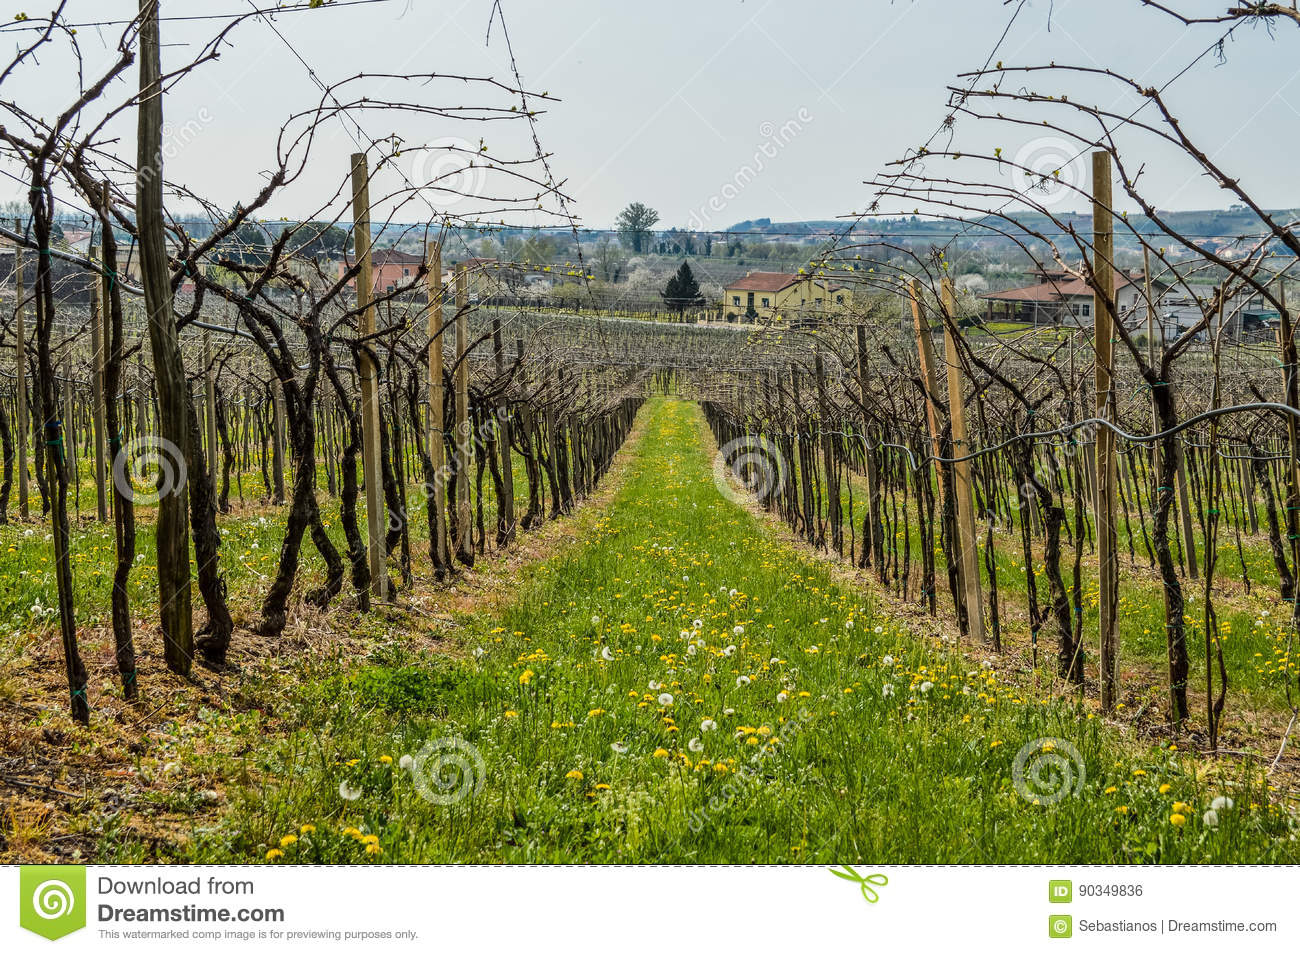 Vineyards On The Hills Of The Soave Area Near Verona In